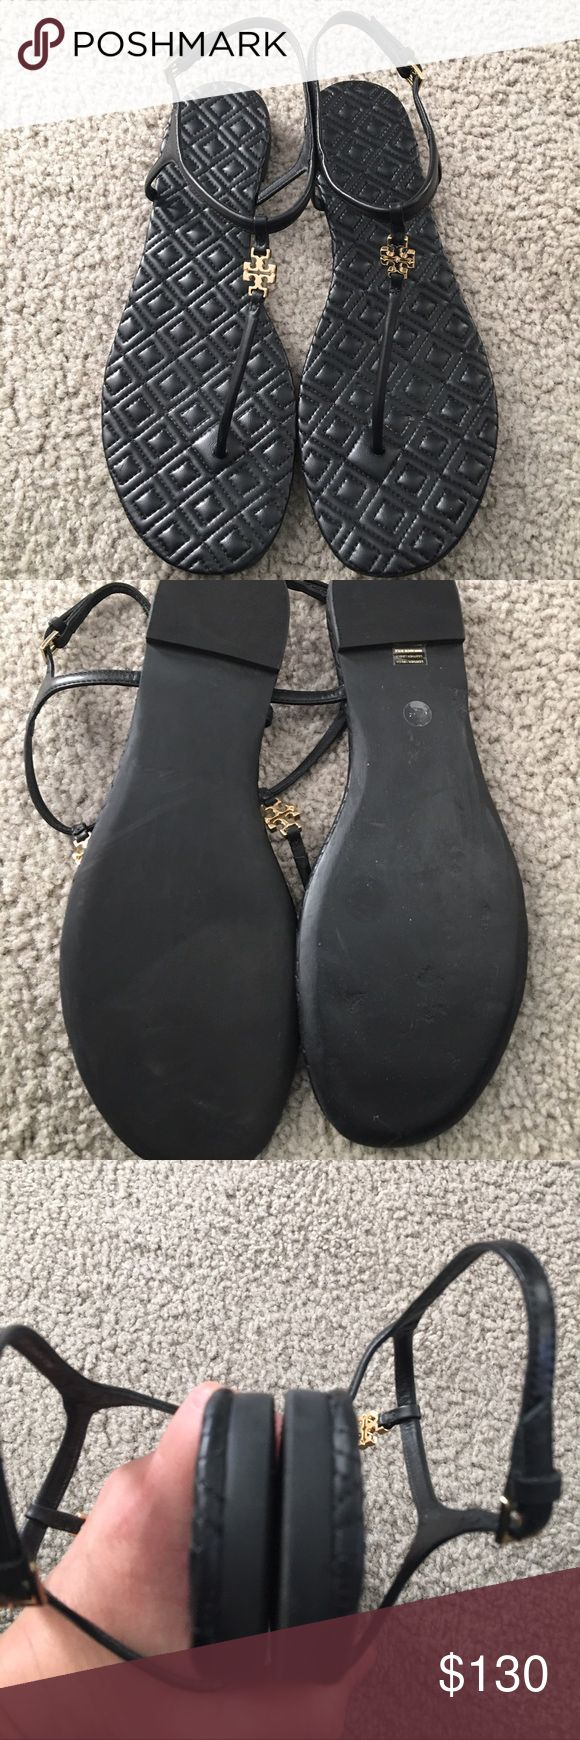 Tory Burch Thong logo sandals